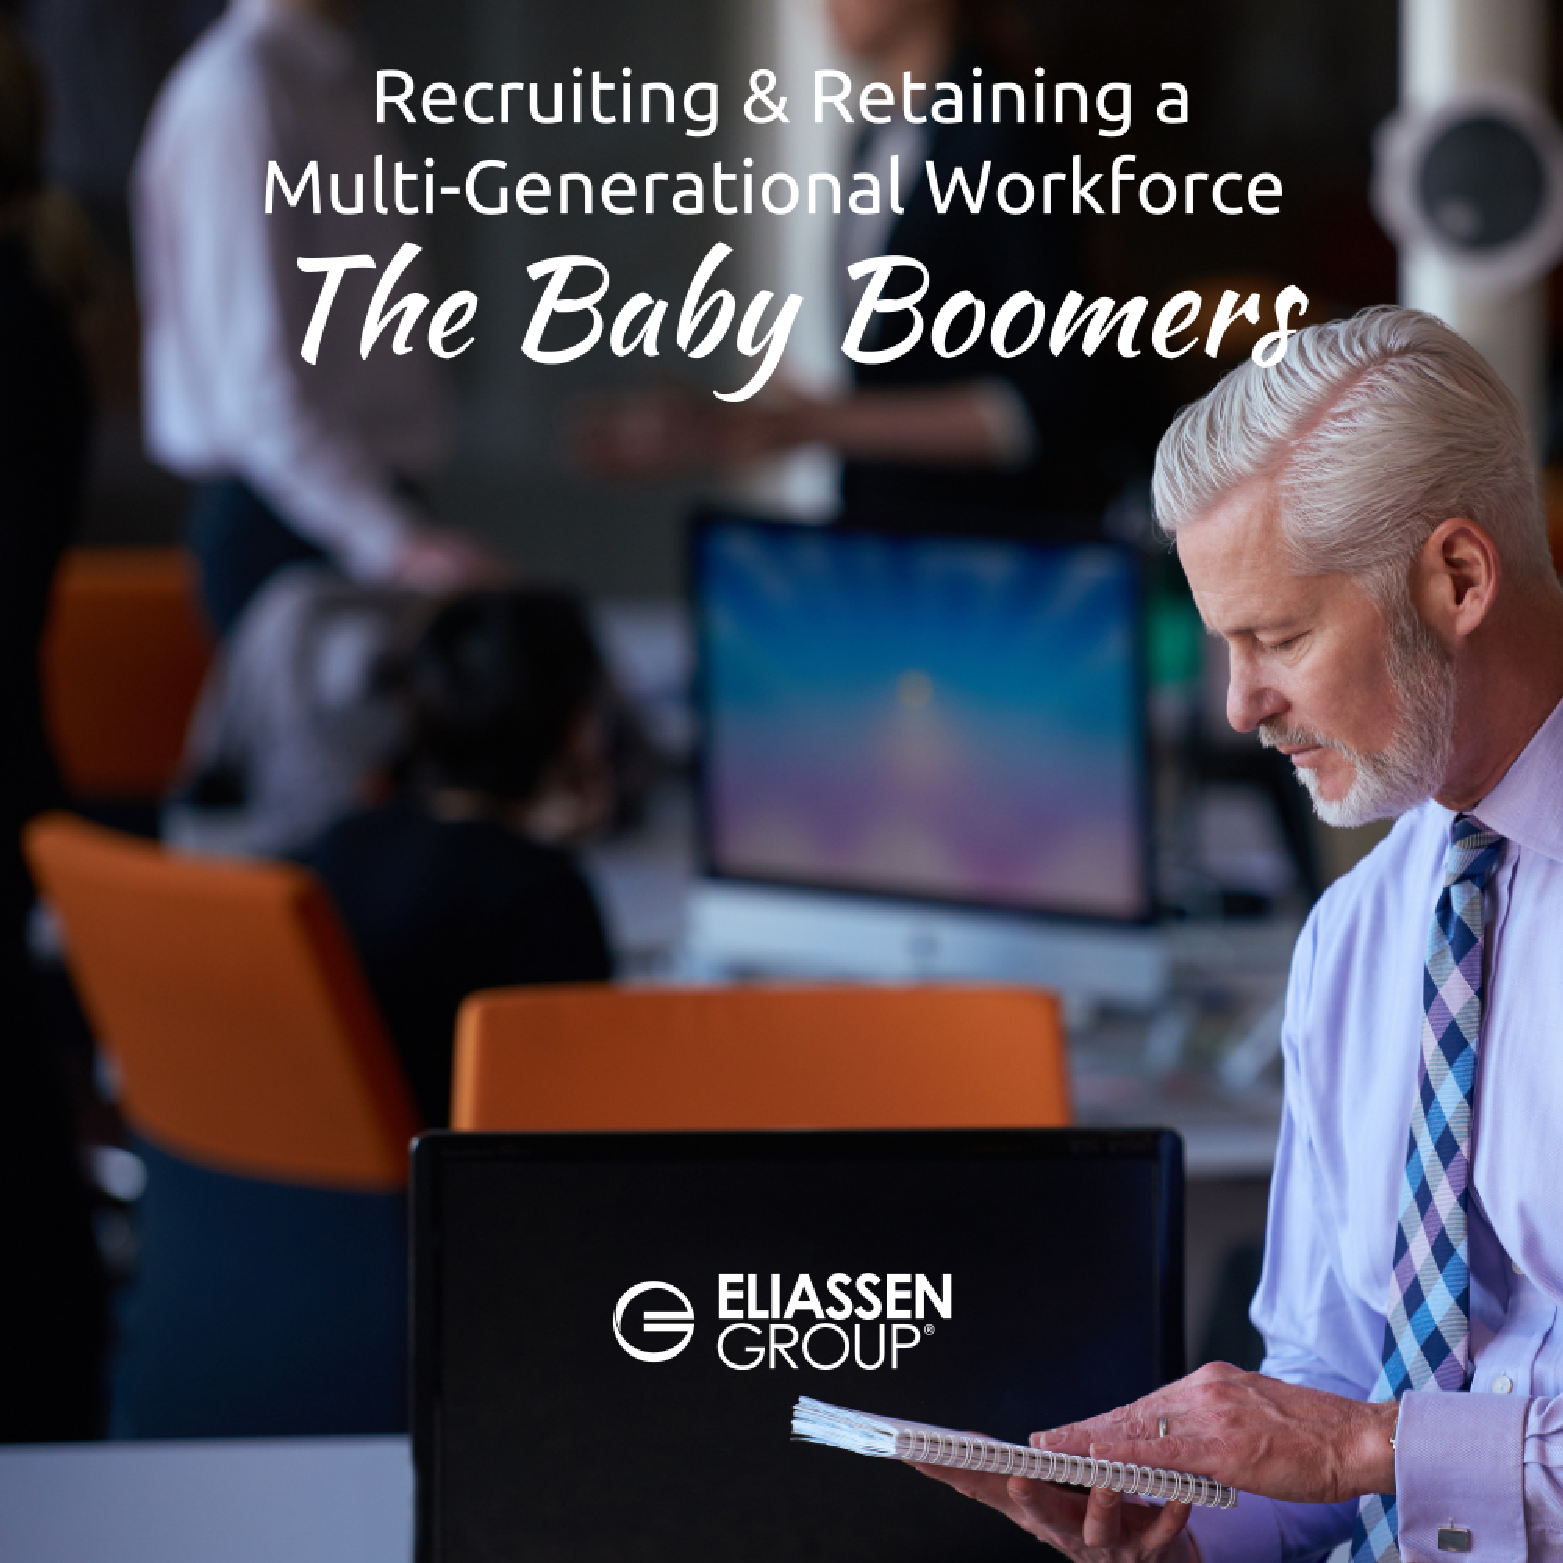 #EliassenGroup #Recruiting #BabyBoomers.png